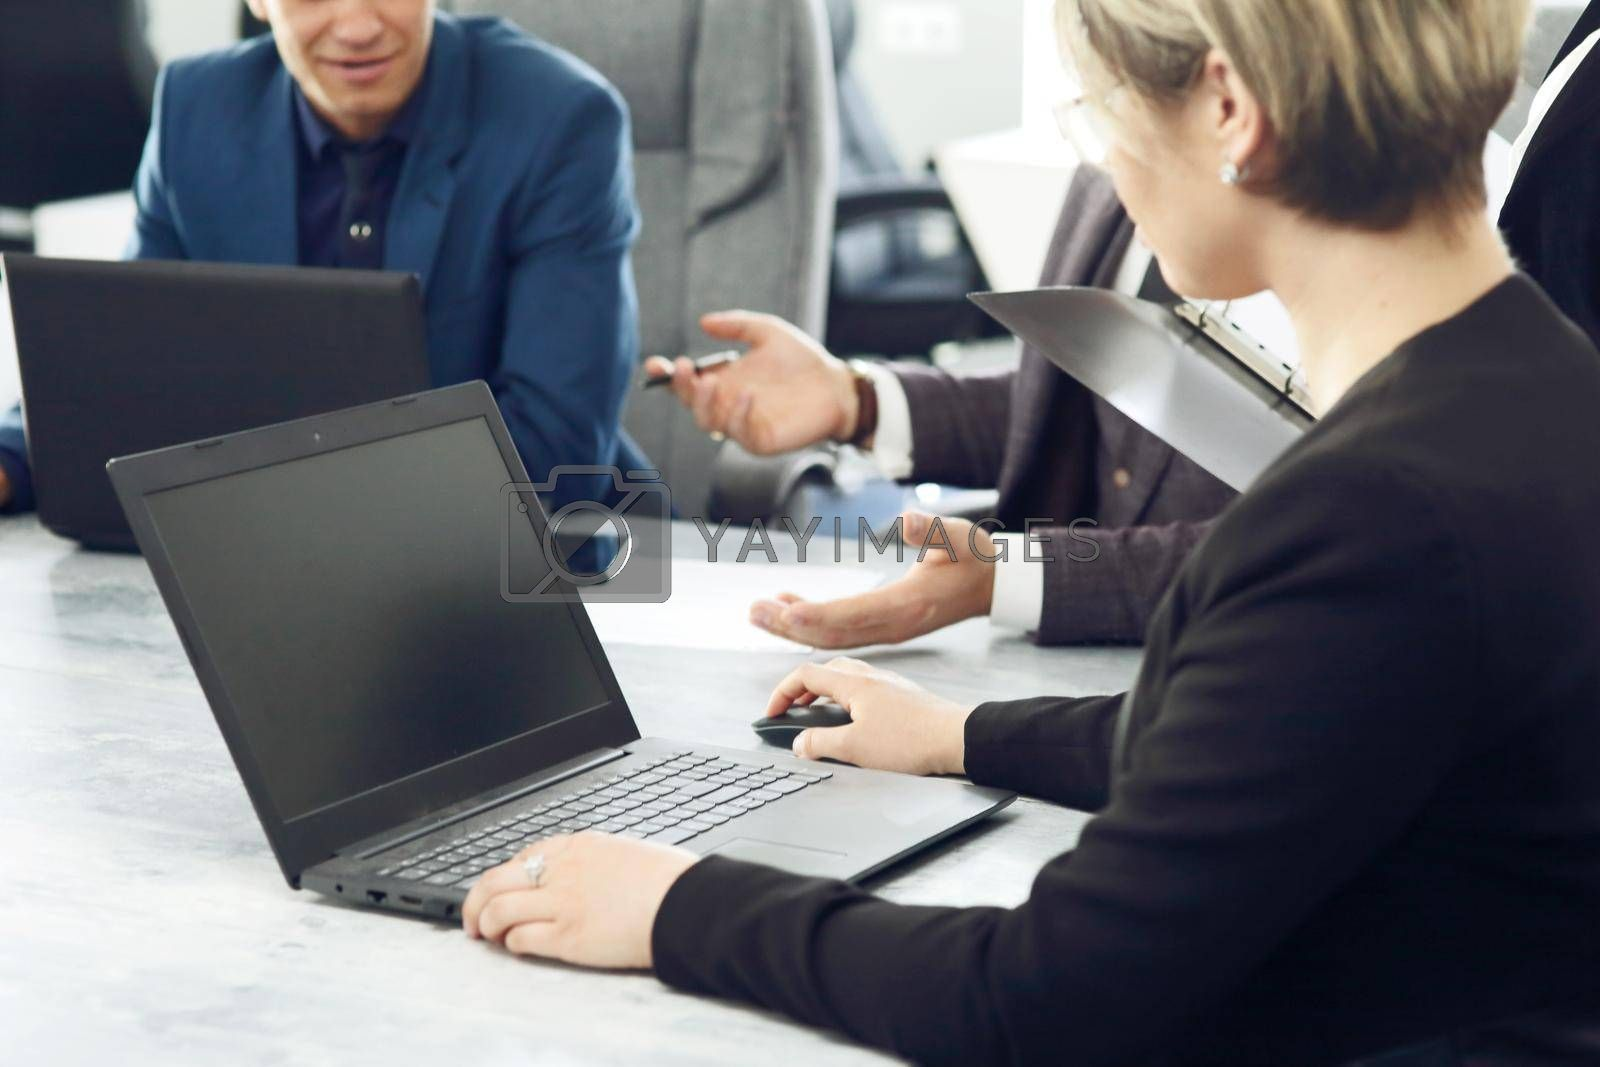 Royalty free image of Laptop against the background of a group of young business people in the office discussing a work idea together by selinsmo